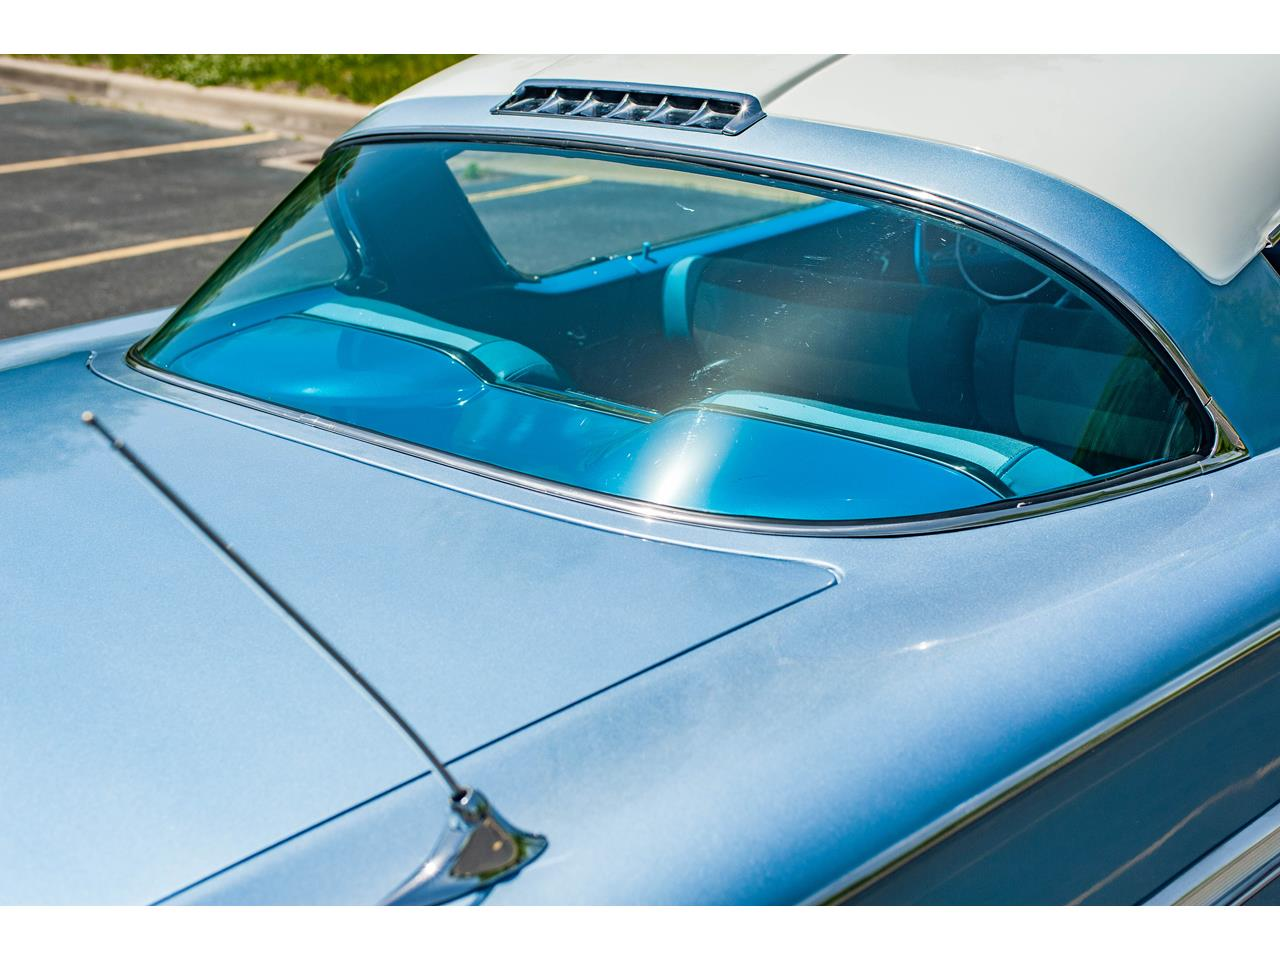 Large Picture of 1958 Chevrolet Impala located in Illinois Offered by Gateway Classic Cars - St. Louis - QB9Q